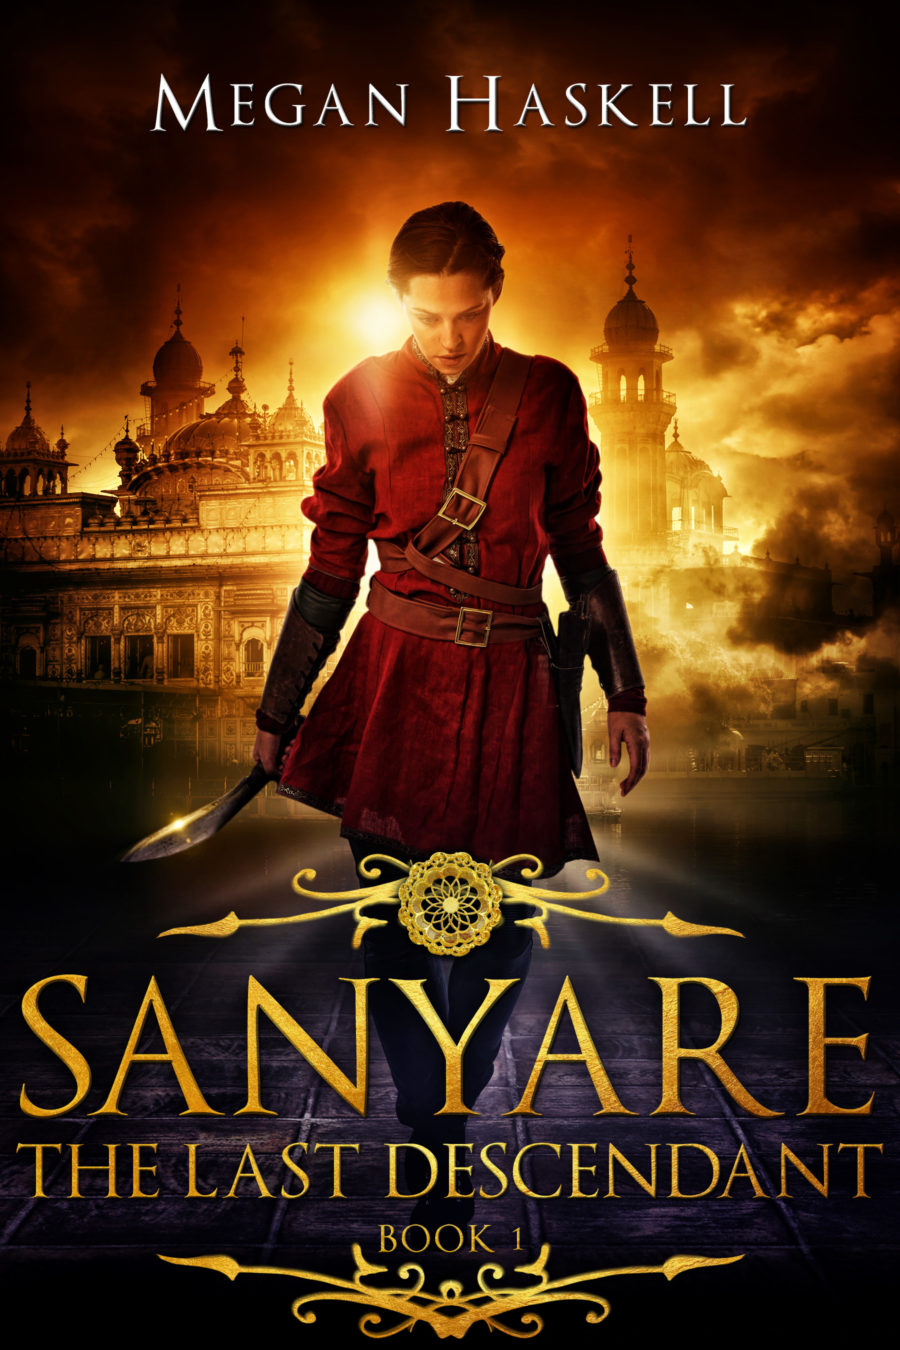 sanyare-the-last-descendant-cover